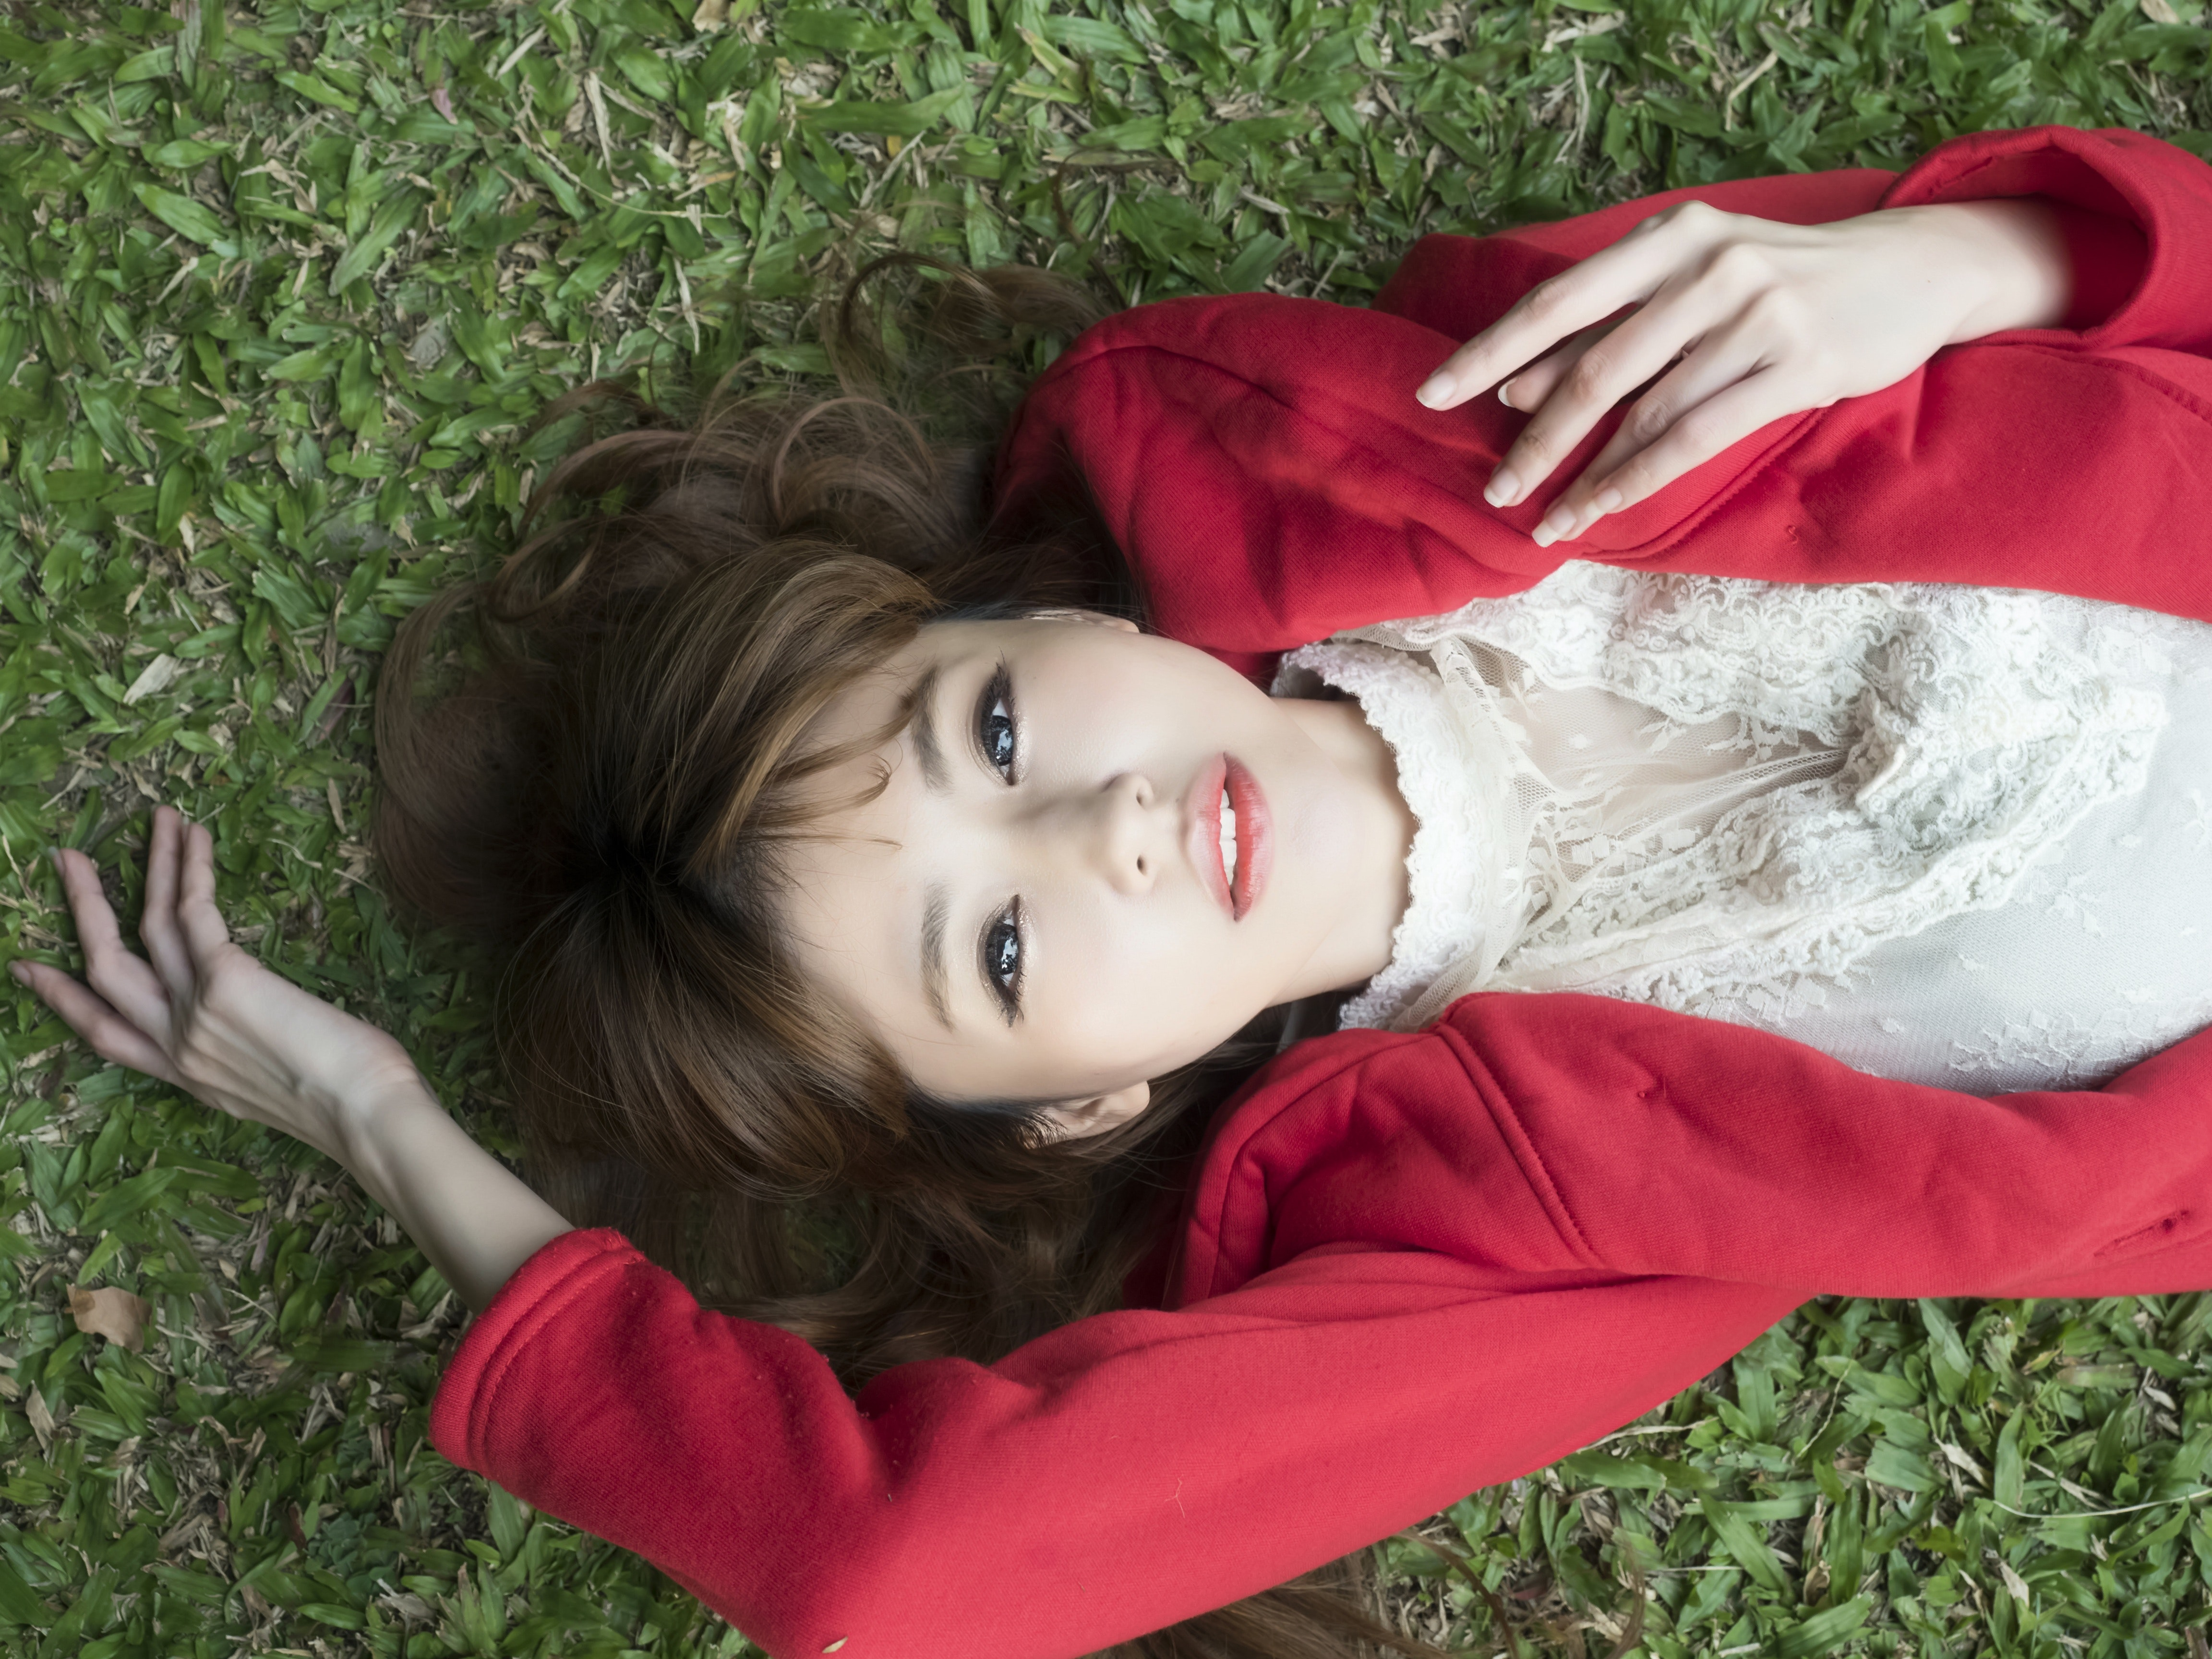 Woman in white shirt wearing red blazer lying on green grass photo